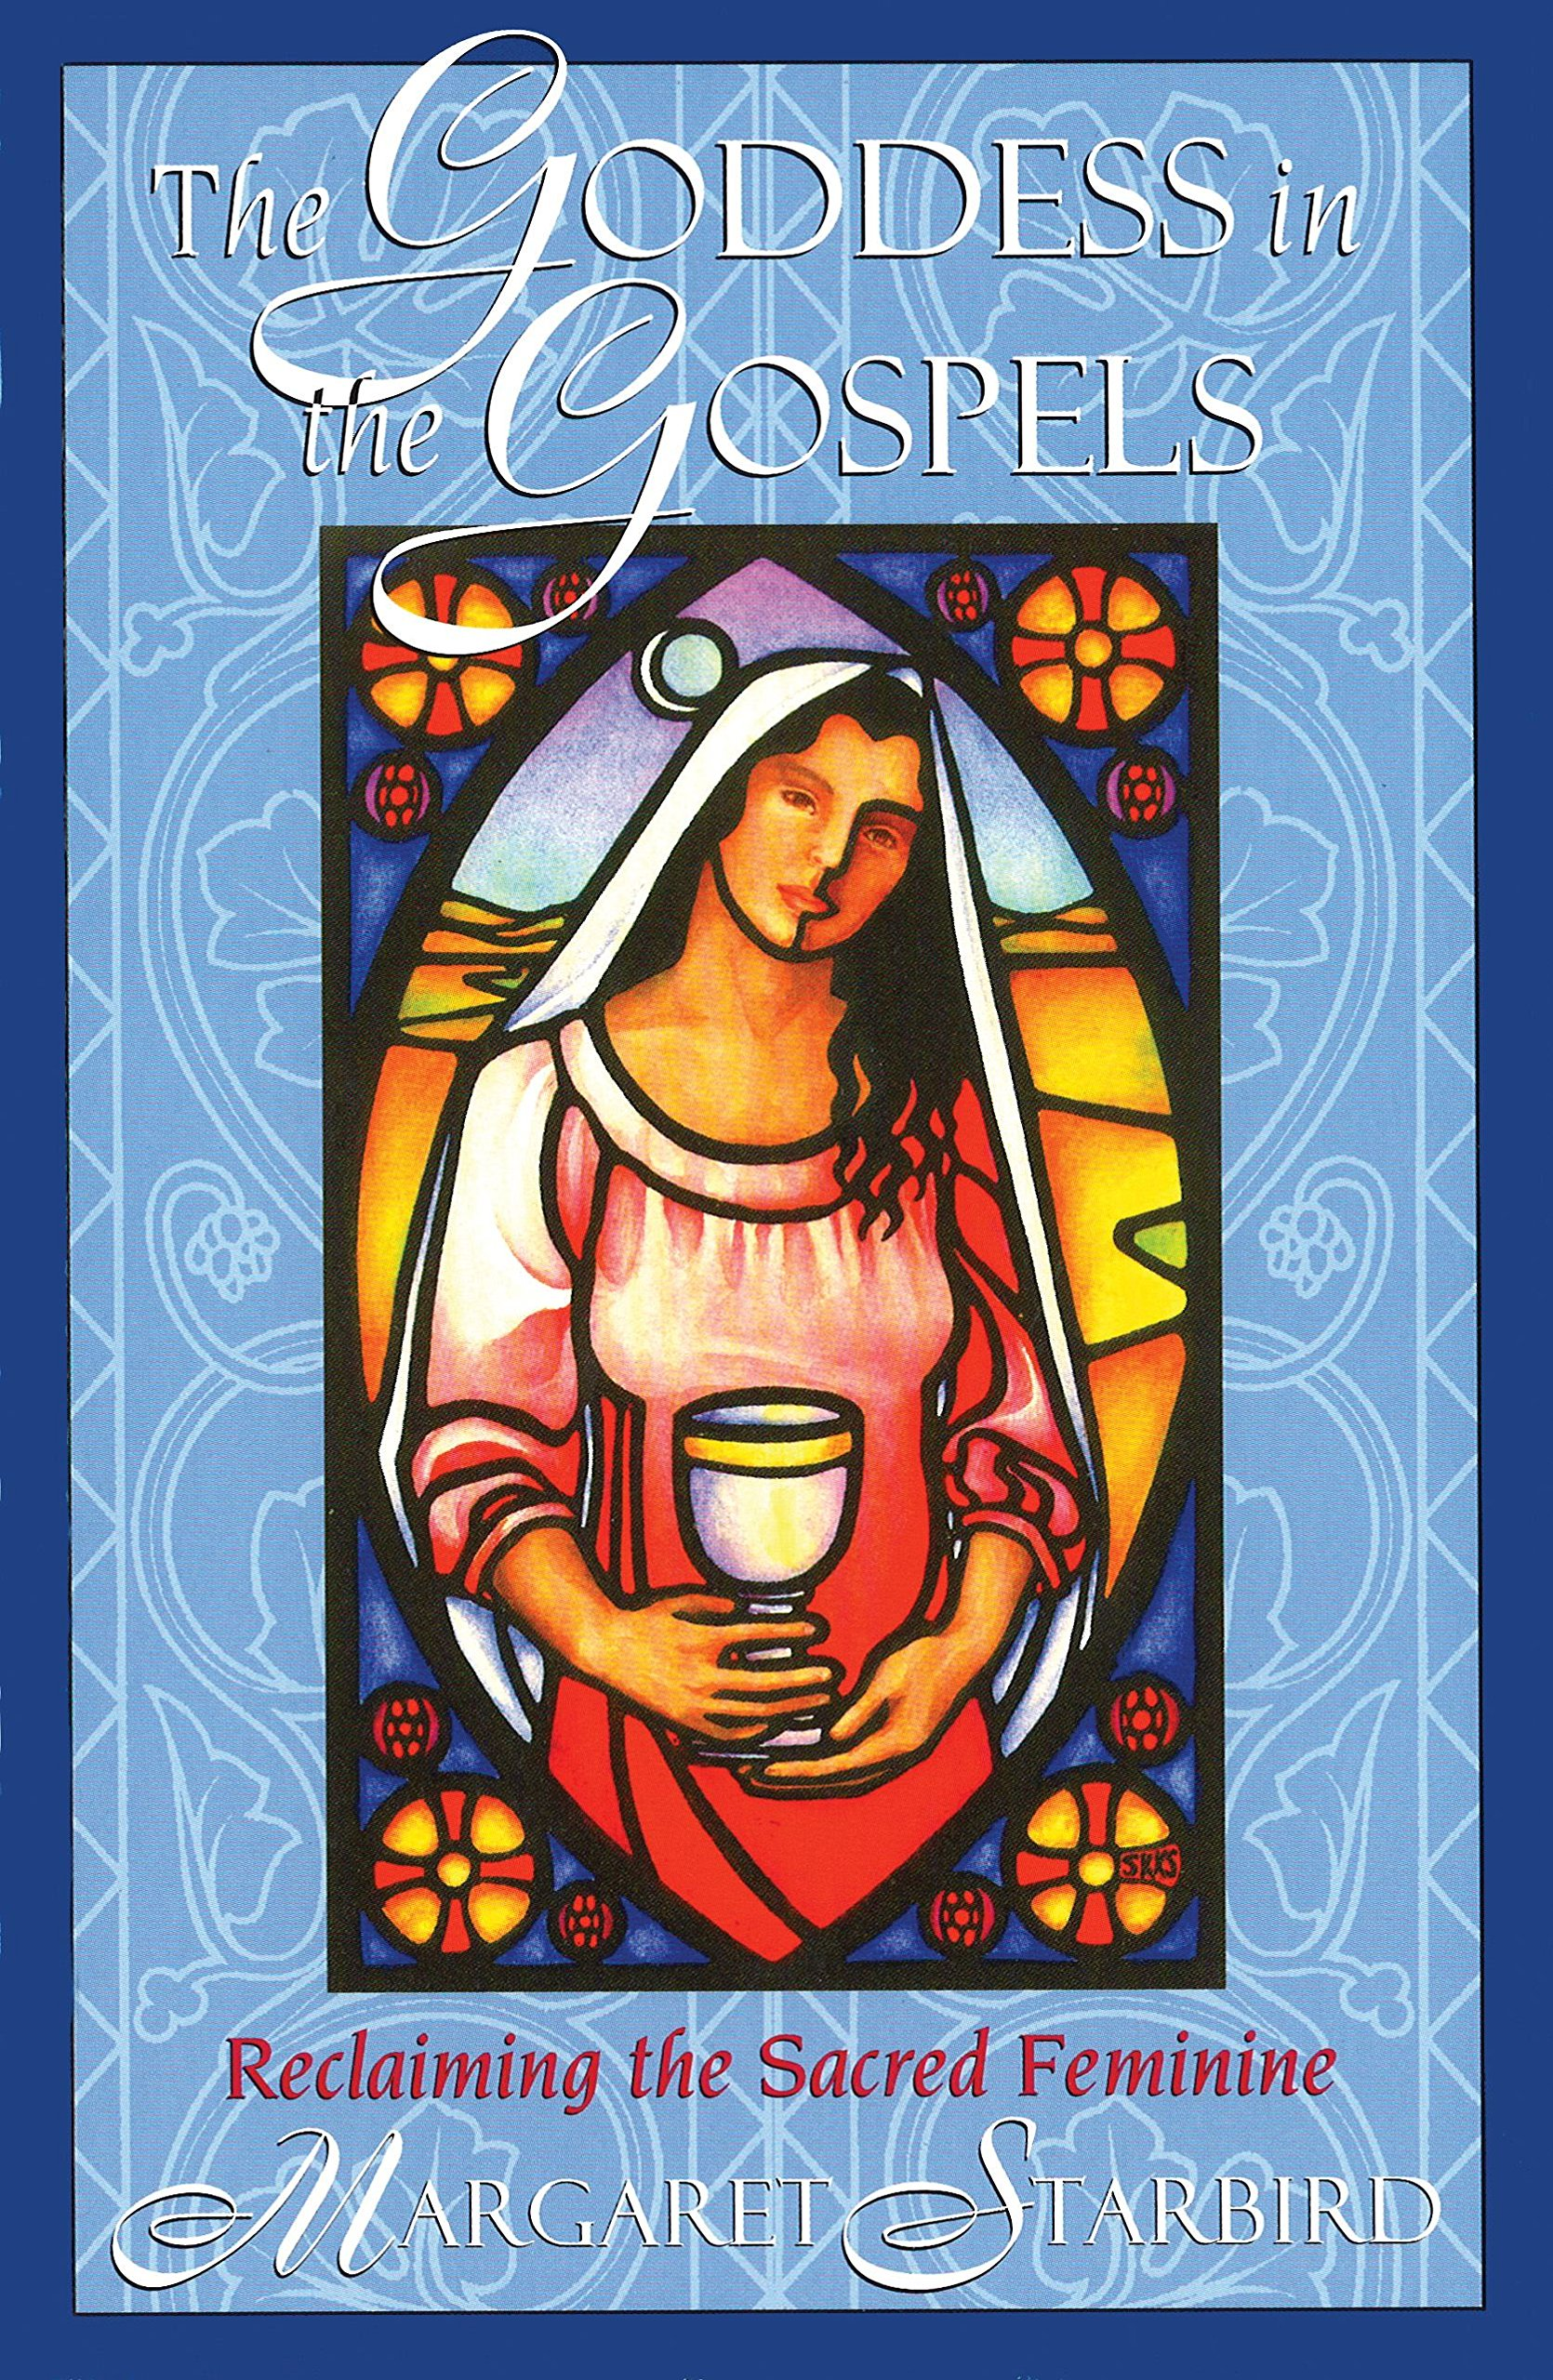 The goddess in the gospels reclaiming the sacred feminine the goddess in the gospels reclaiming the sacred feminine margaret starbird 9781879181557 amazon books biocorpaavc Images